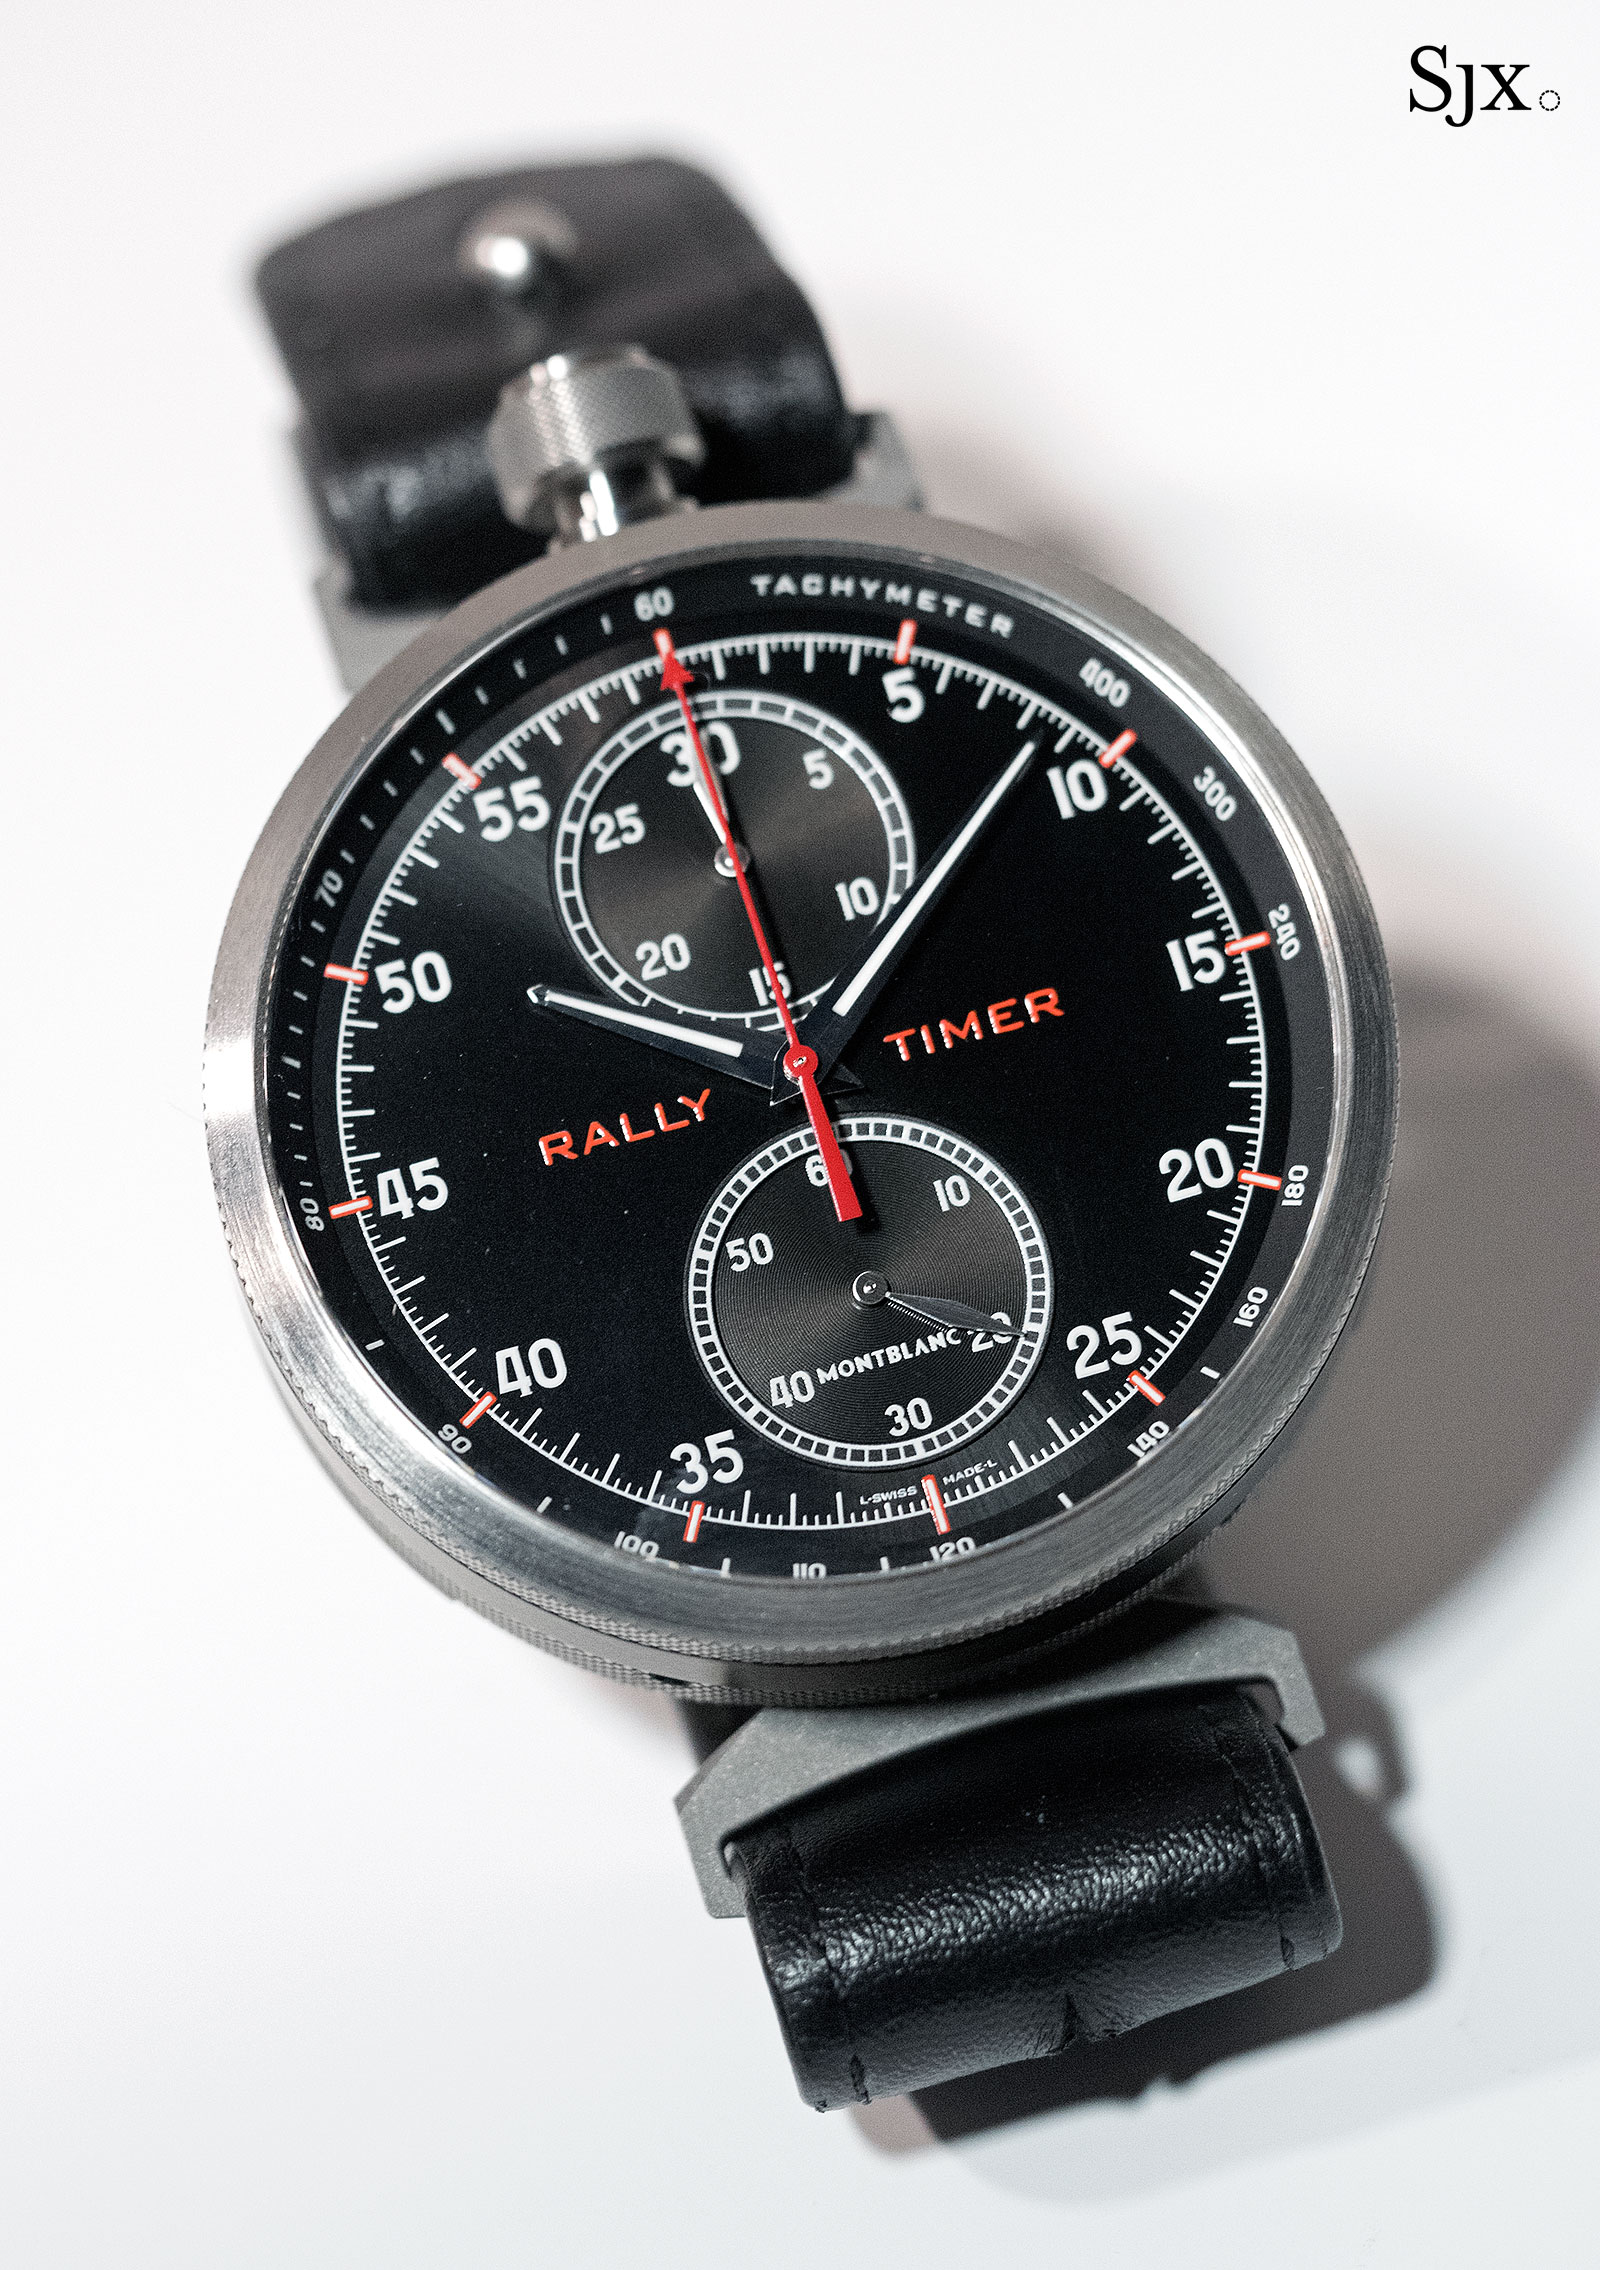 Montblanc TimeWalker Chronograph Rally Timer Counter-1